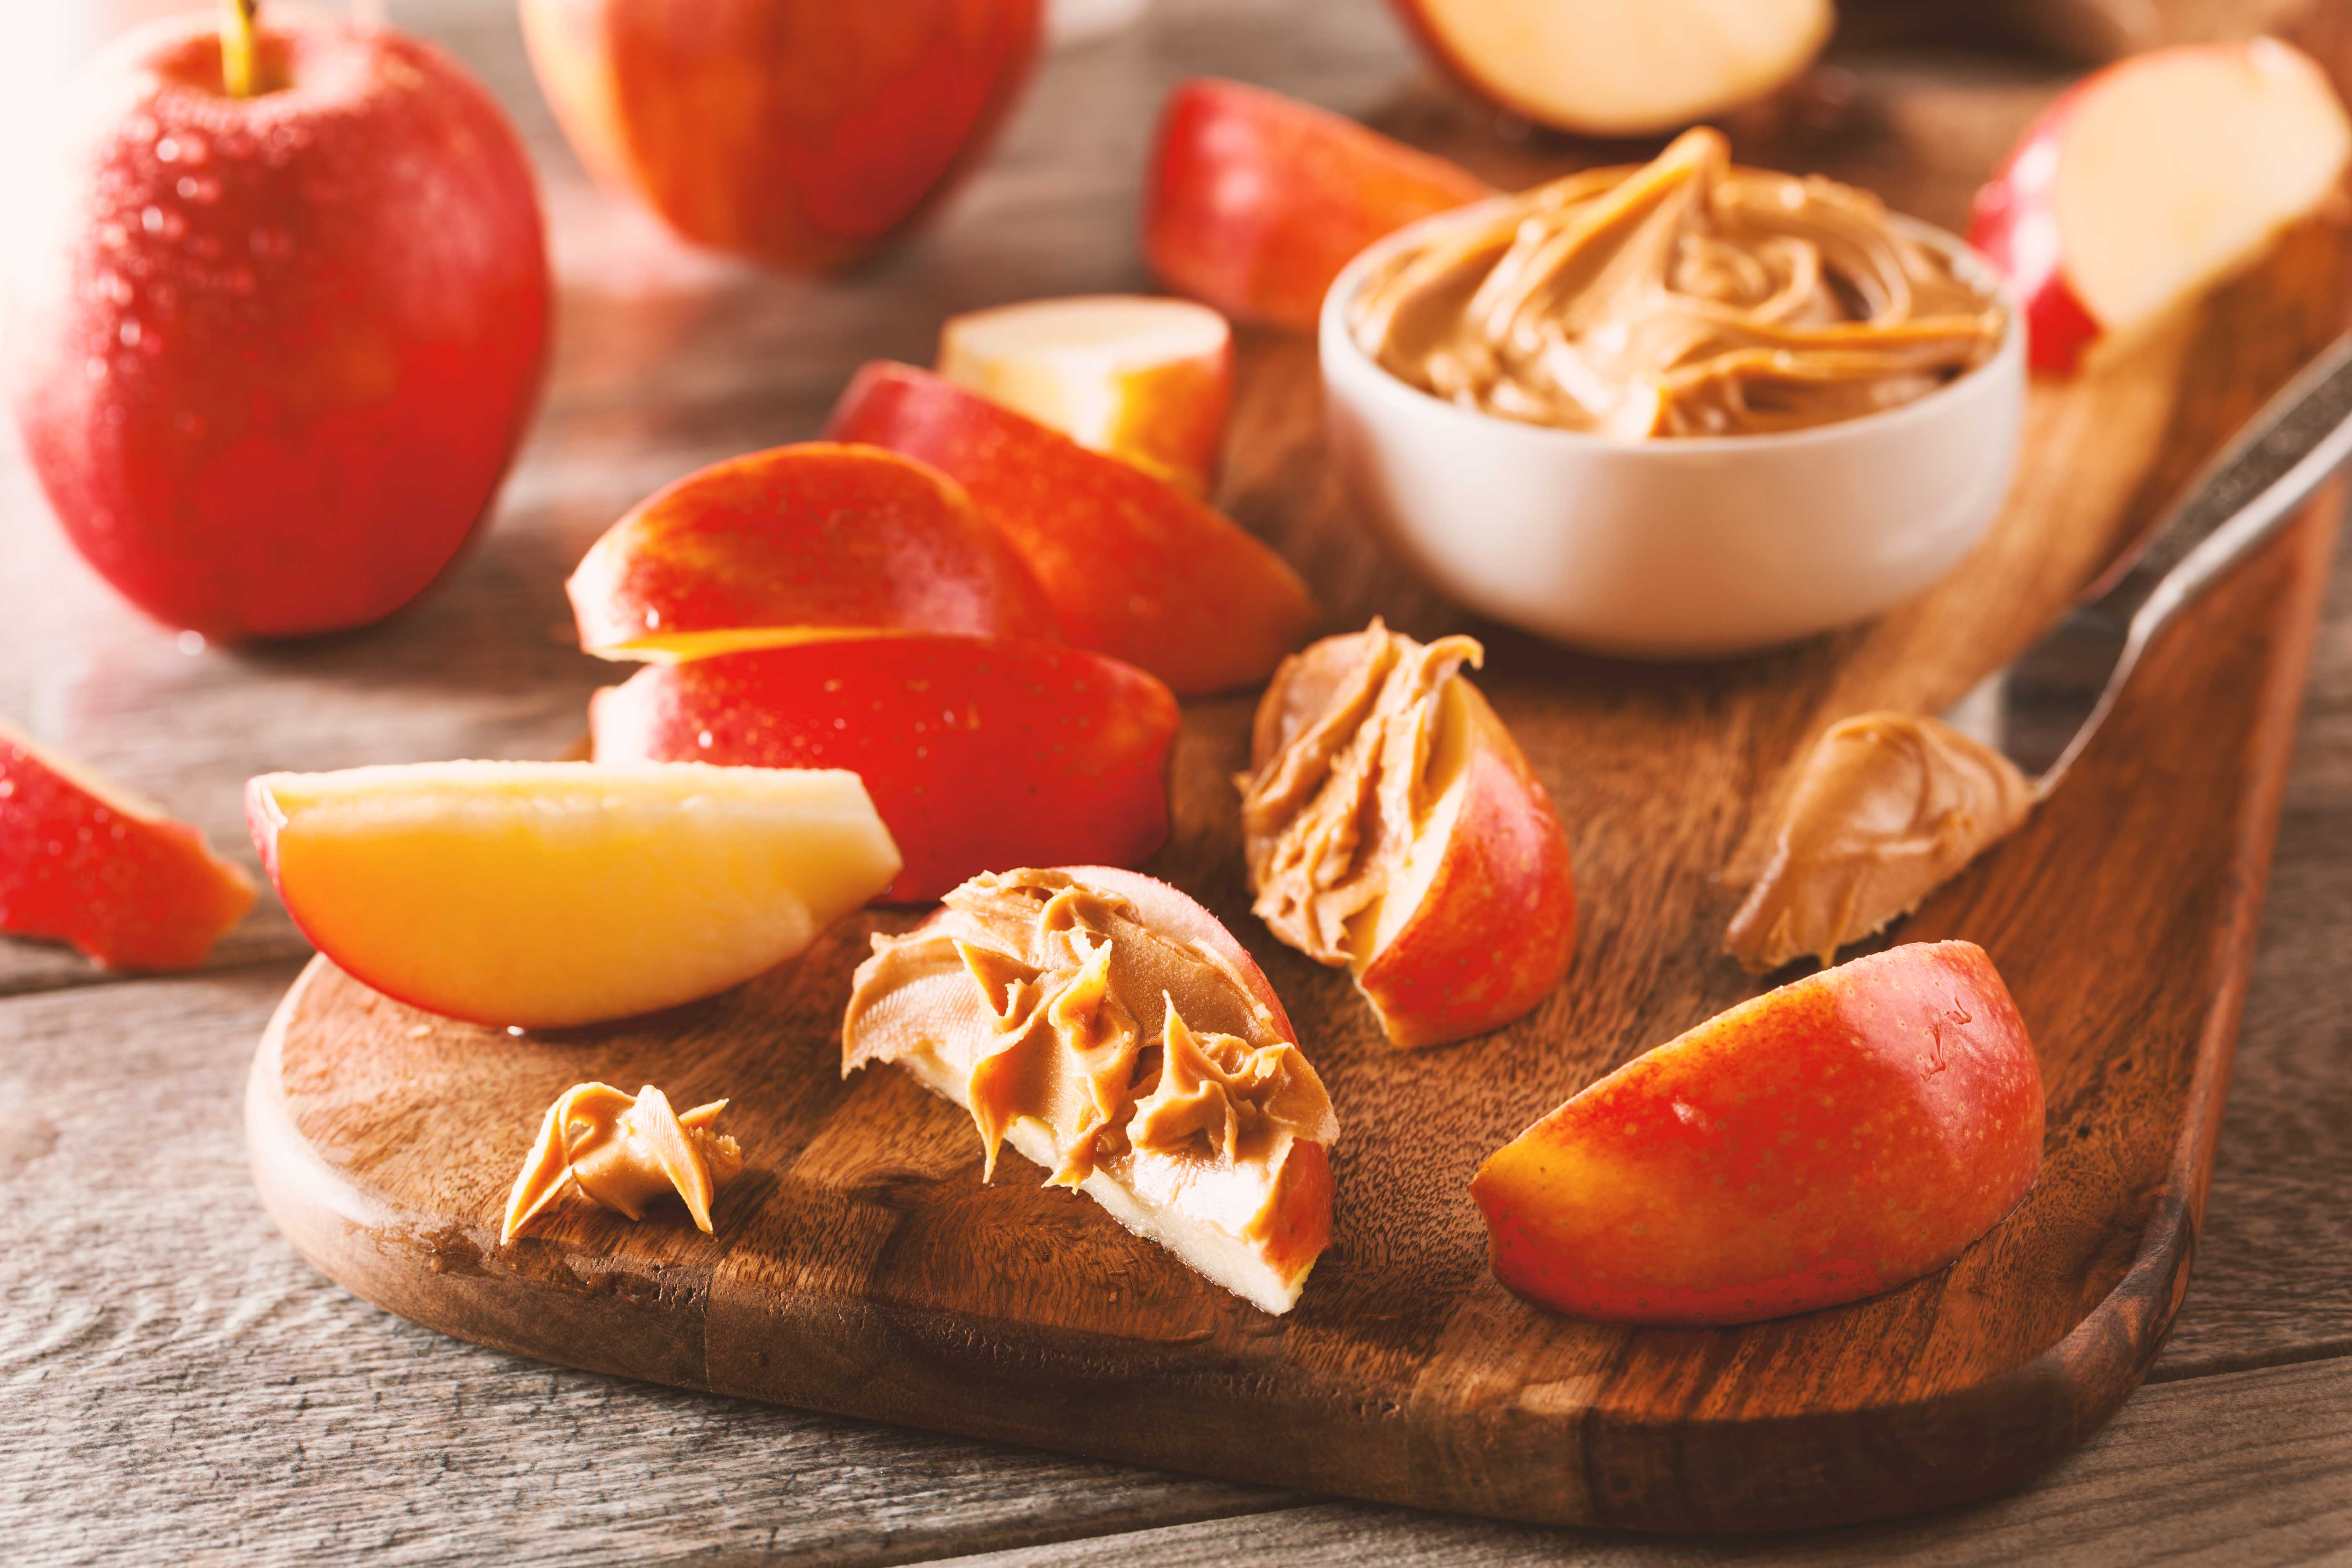 peanut-butter-apples